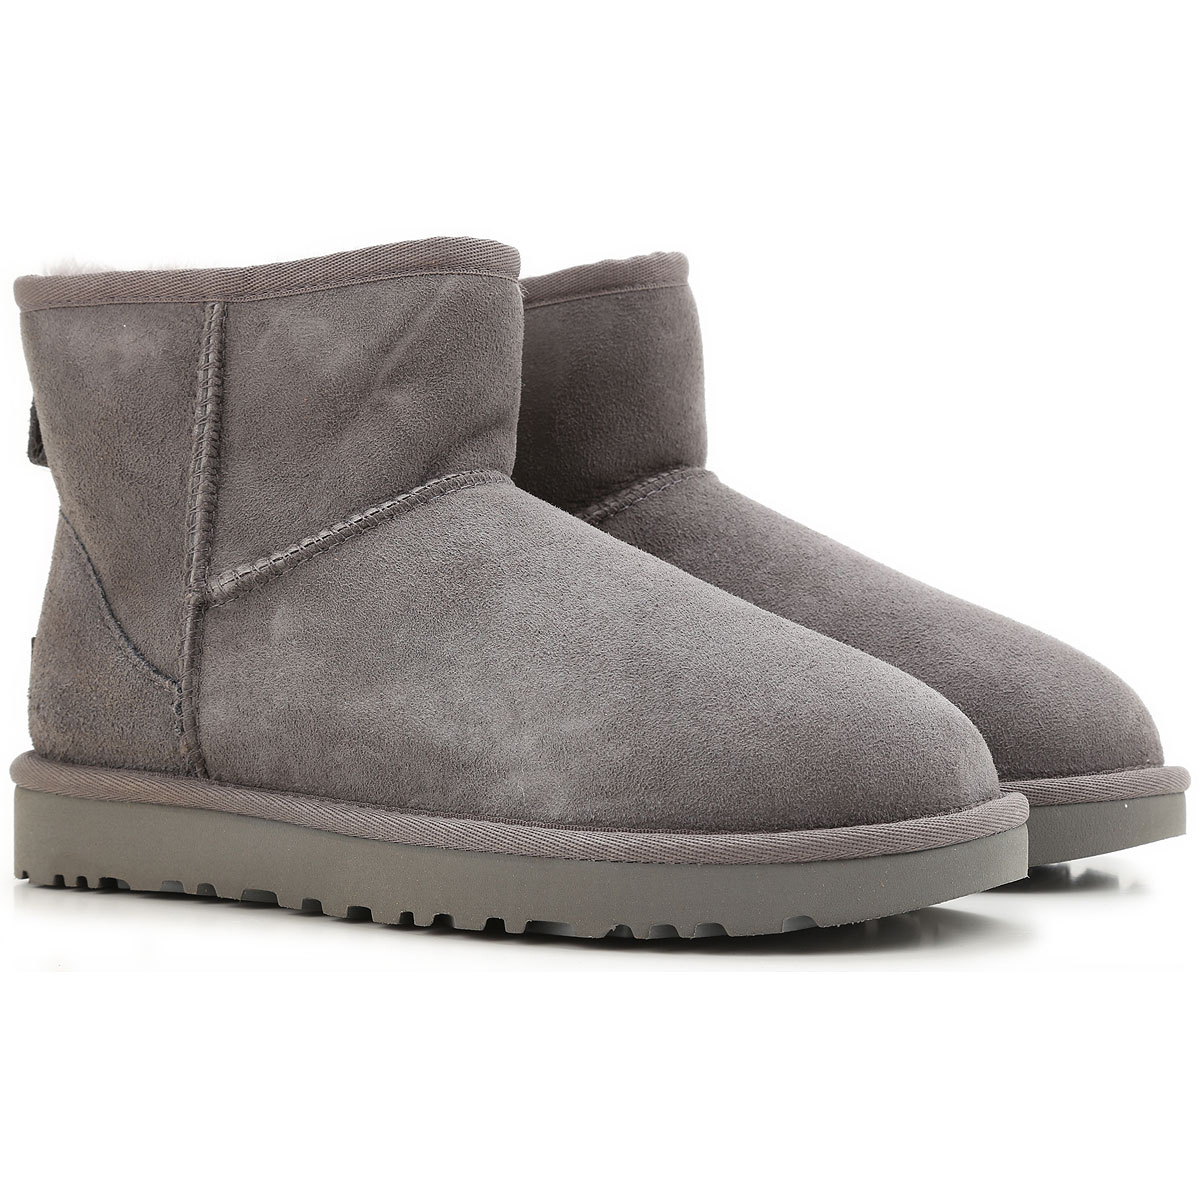 UGG Boots for Women, Booties On Sale in Outlet, Medium Grey, Suede leather, 2019, USA 5 UK 3 5 EU 36 JAPAN 220 USA 6 UK 4 5 EU 37 JAPAN 230 USA